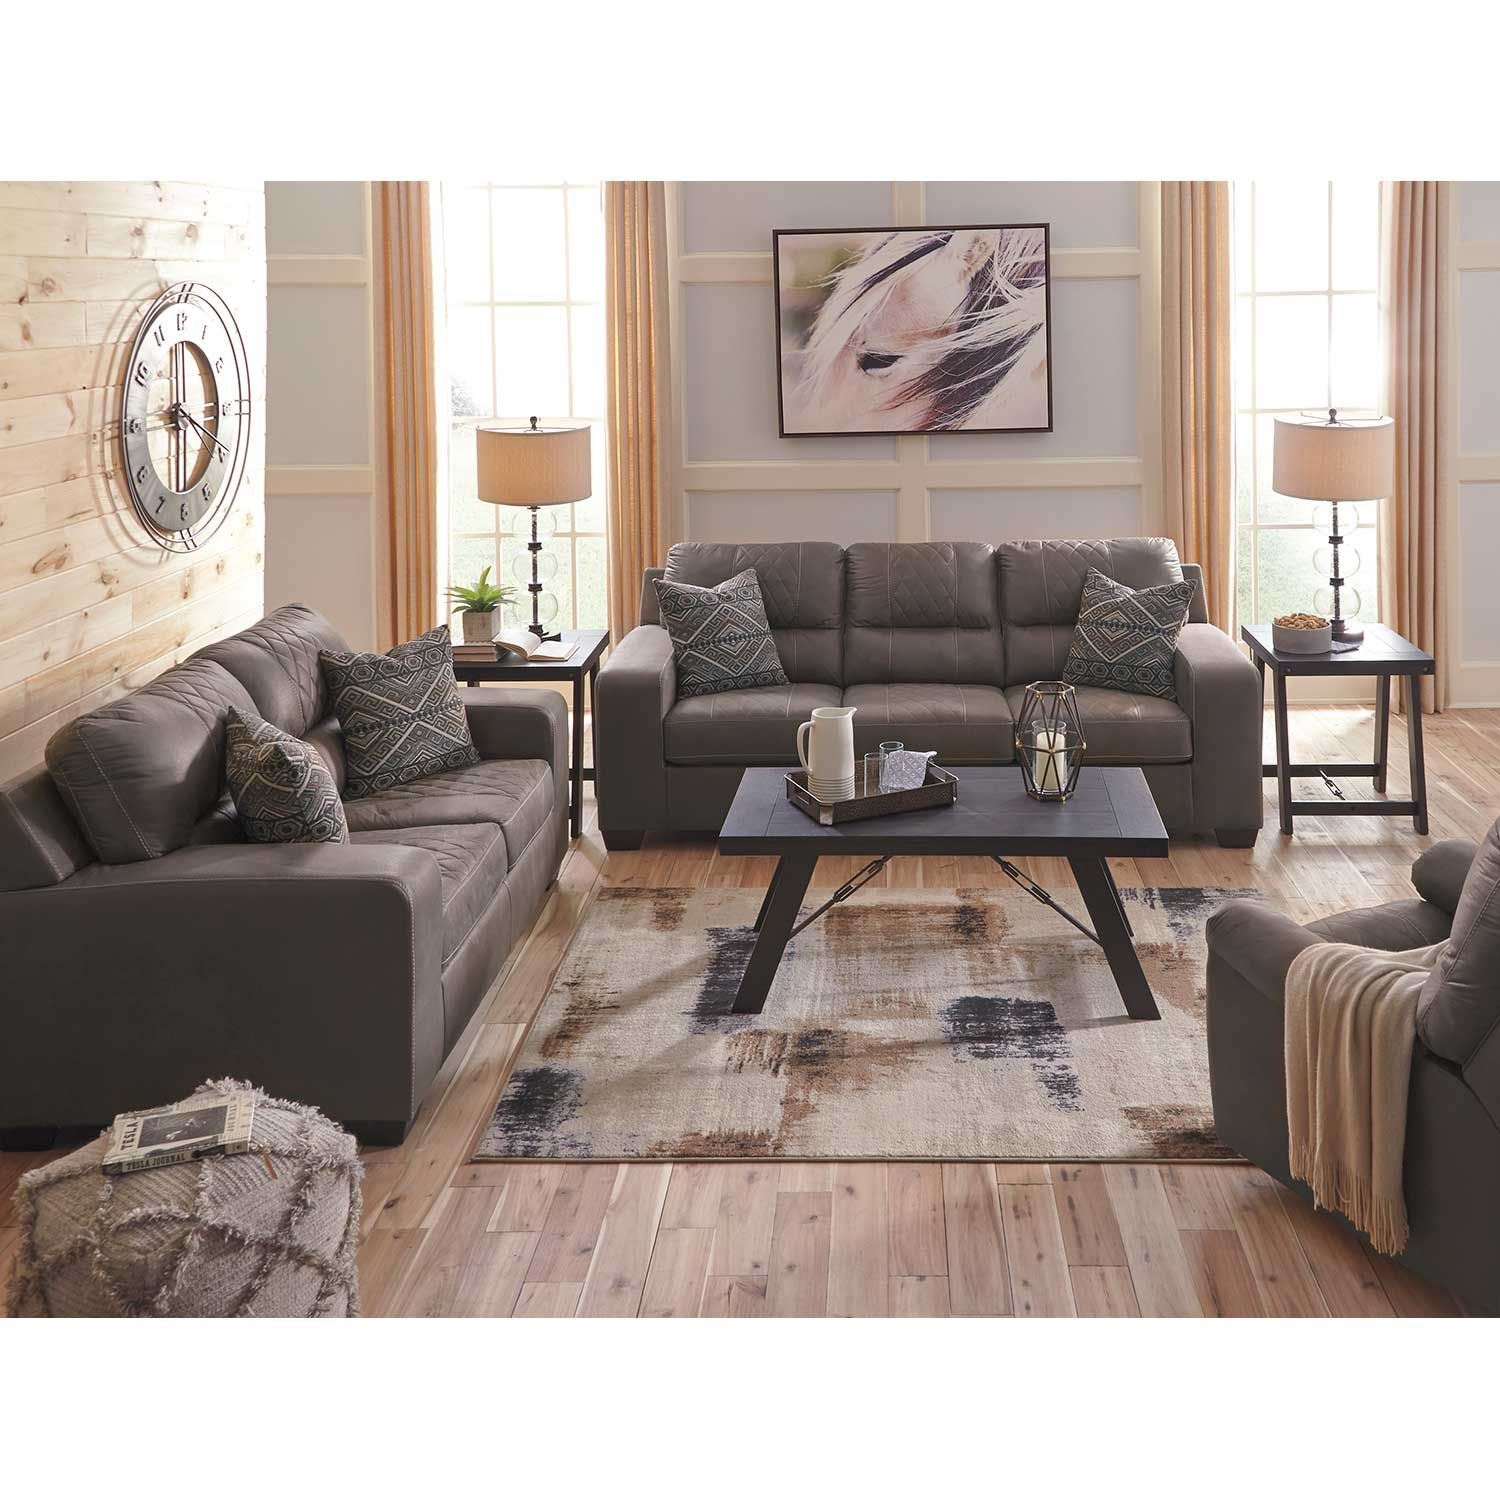 Gray Sofas For Living Room Narzole Gray Sofa